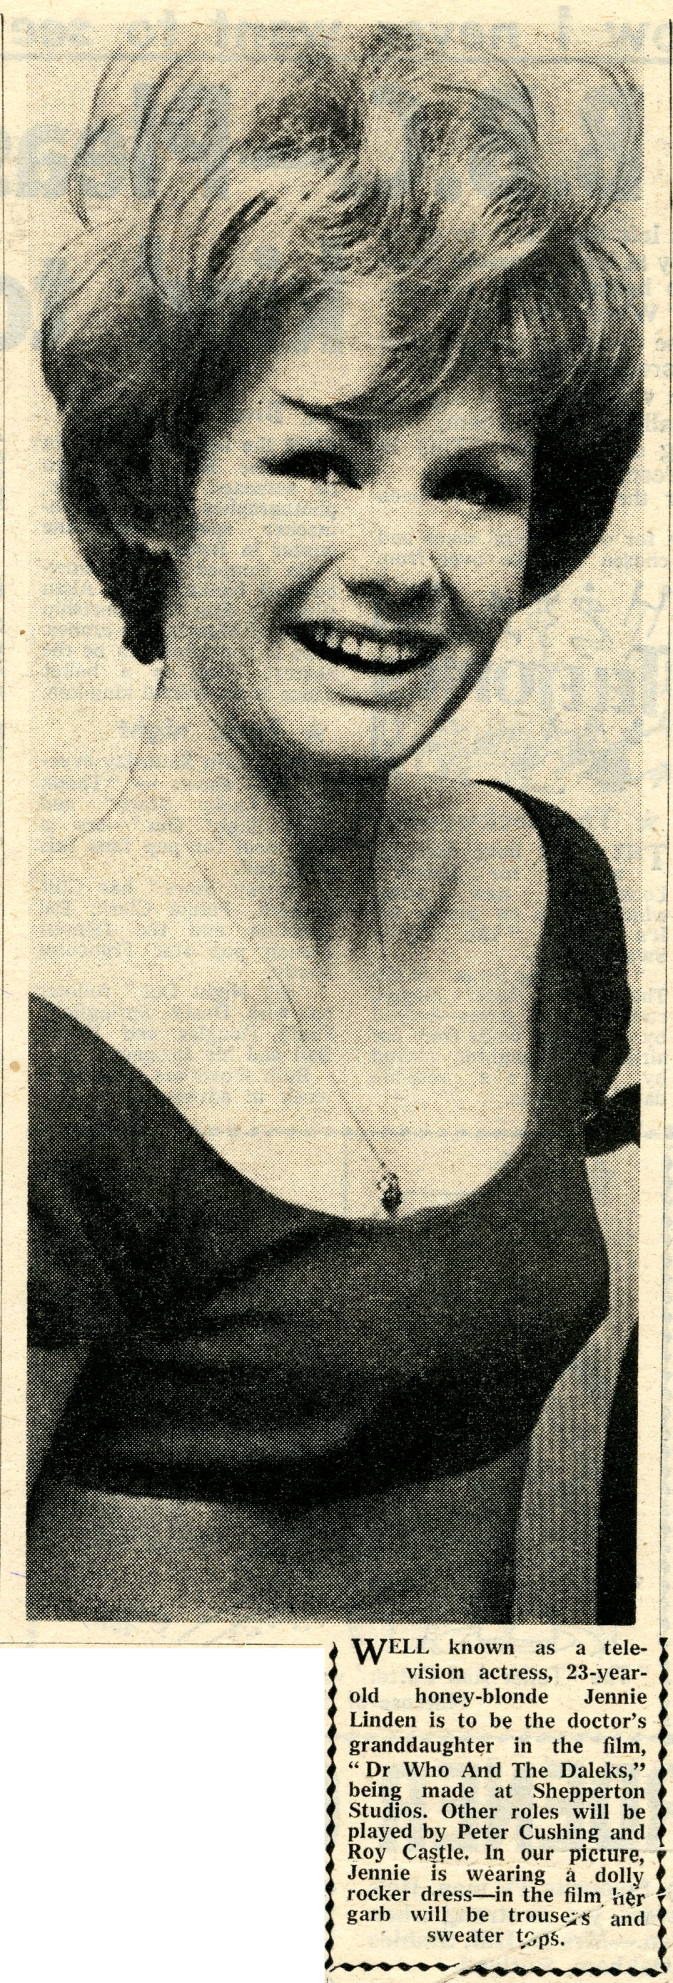 Weekly News, 20 March 1965